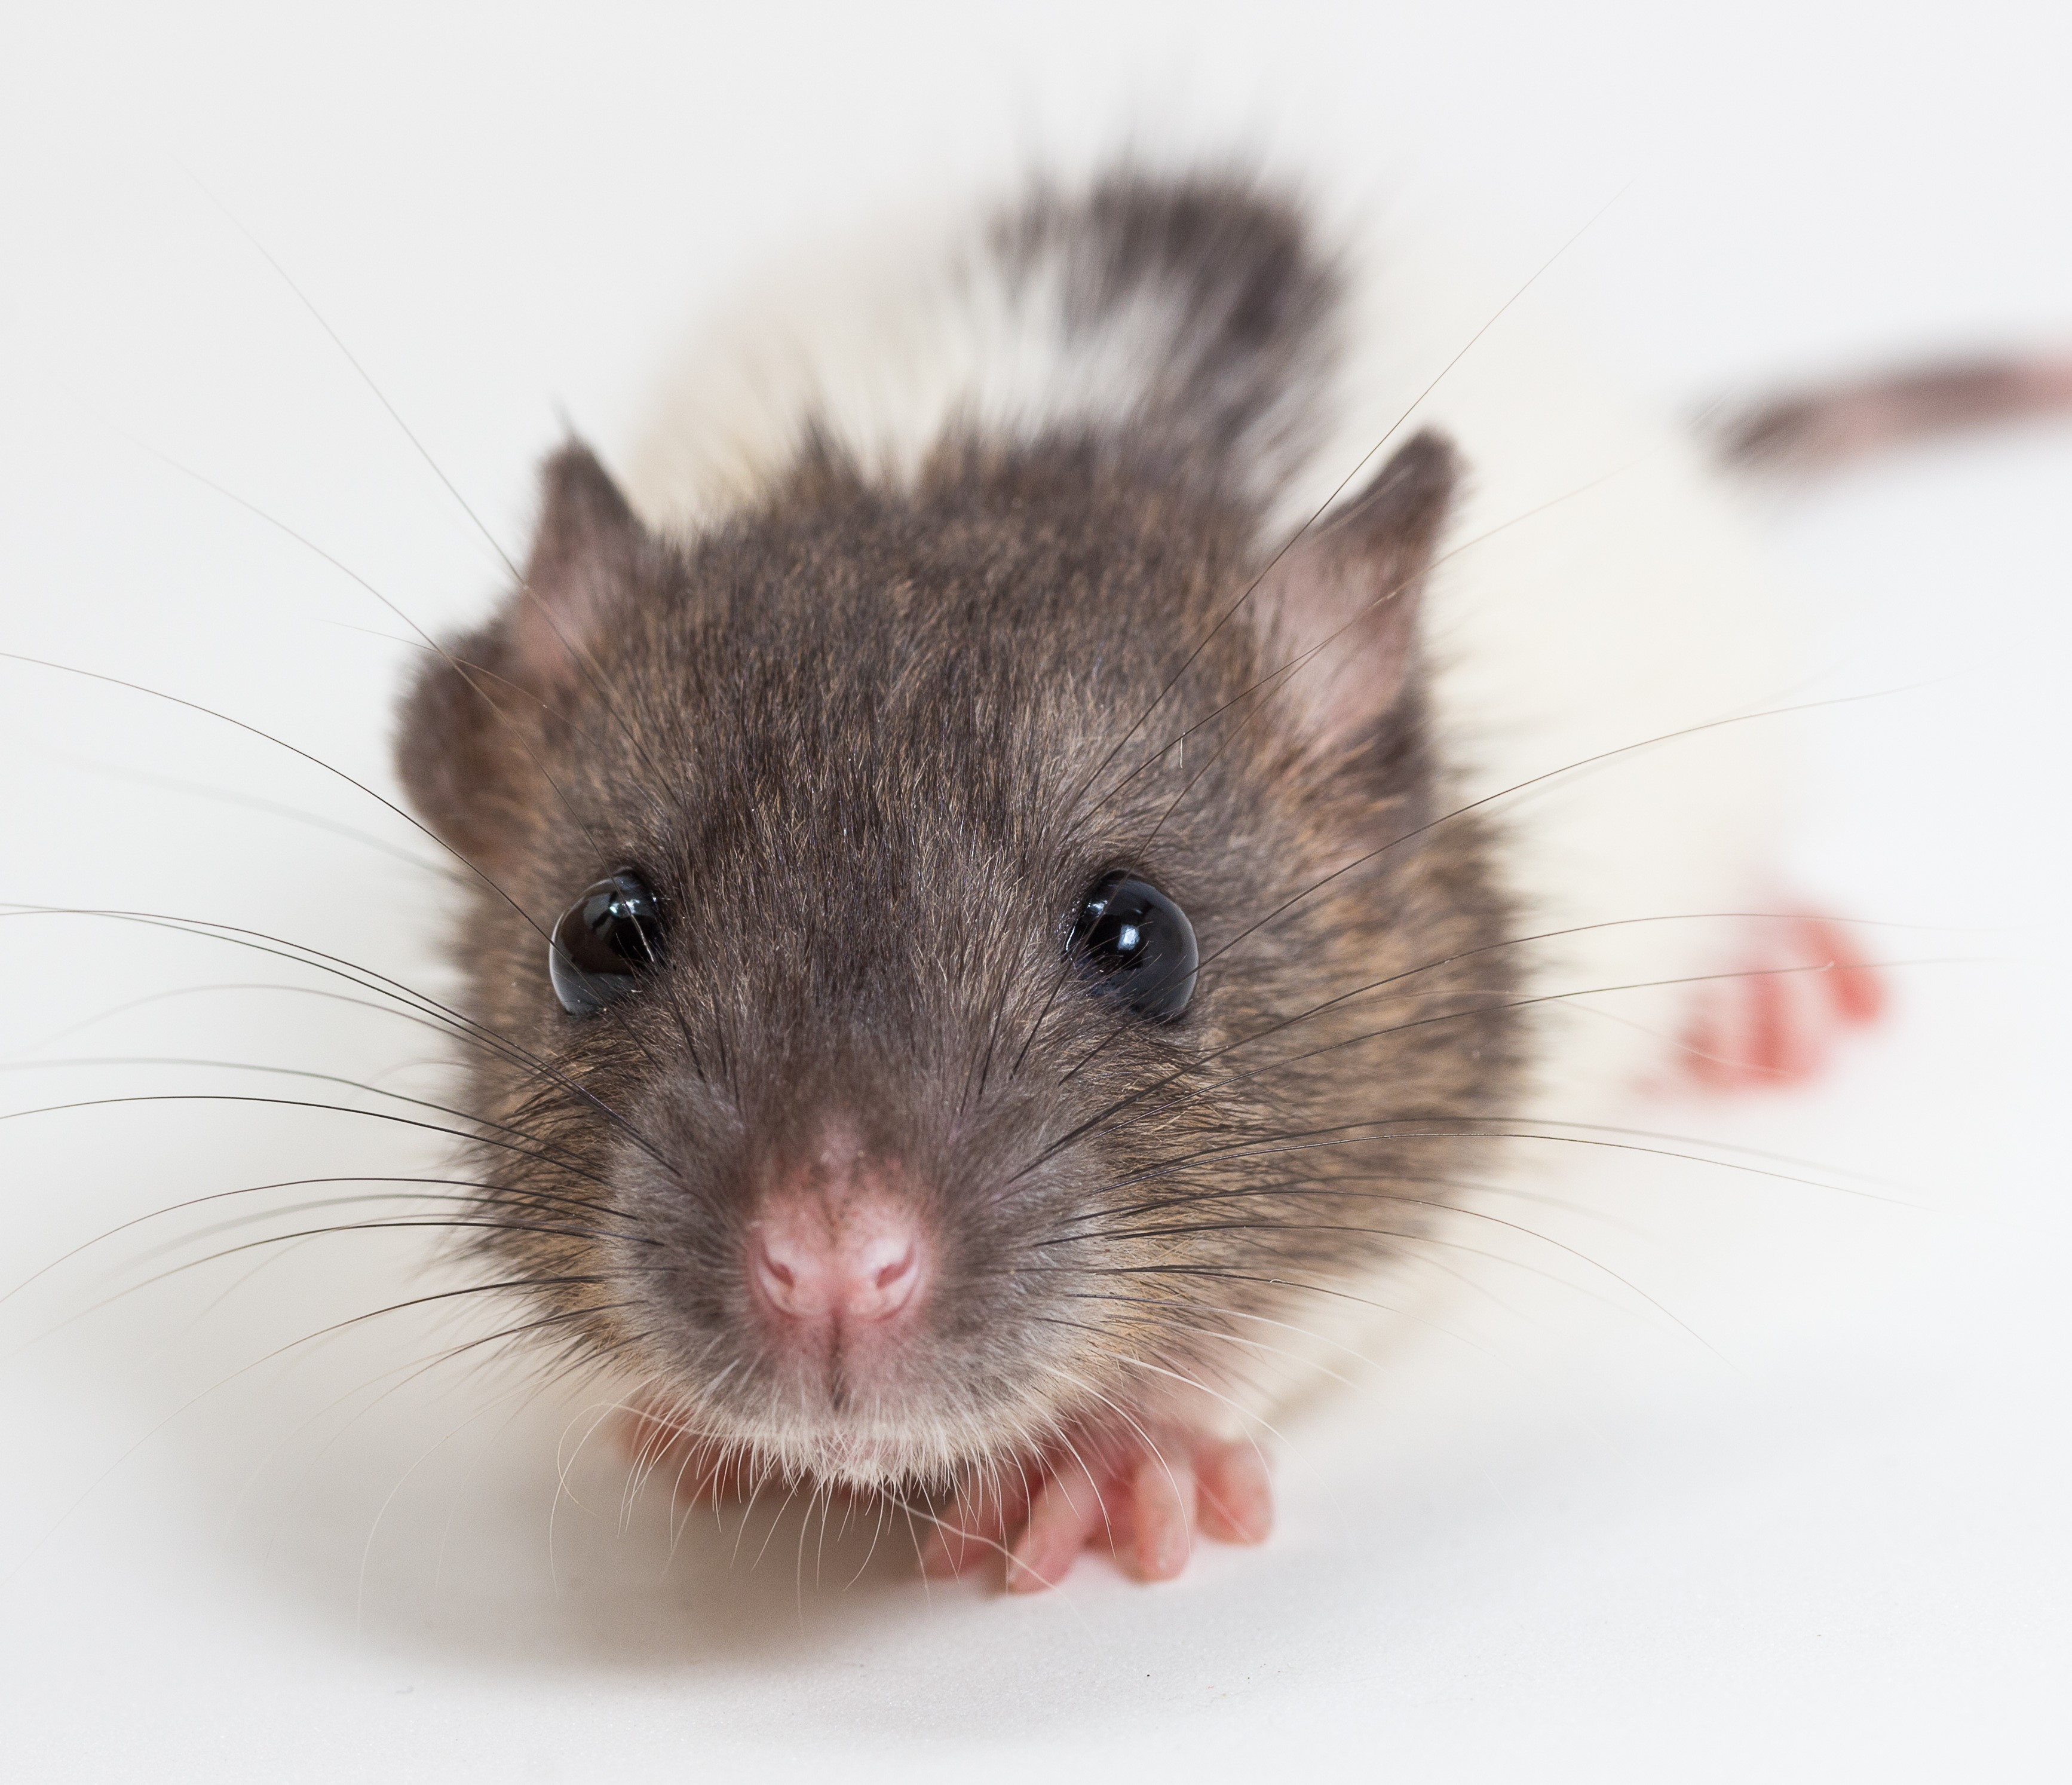 closeup_cute_baby_rat_crop.jpg